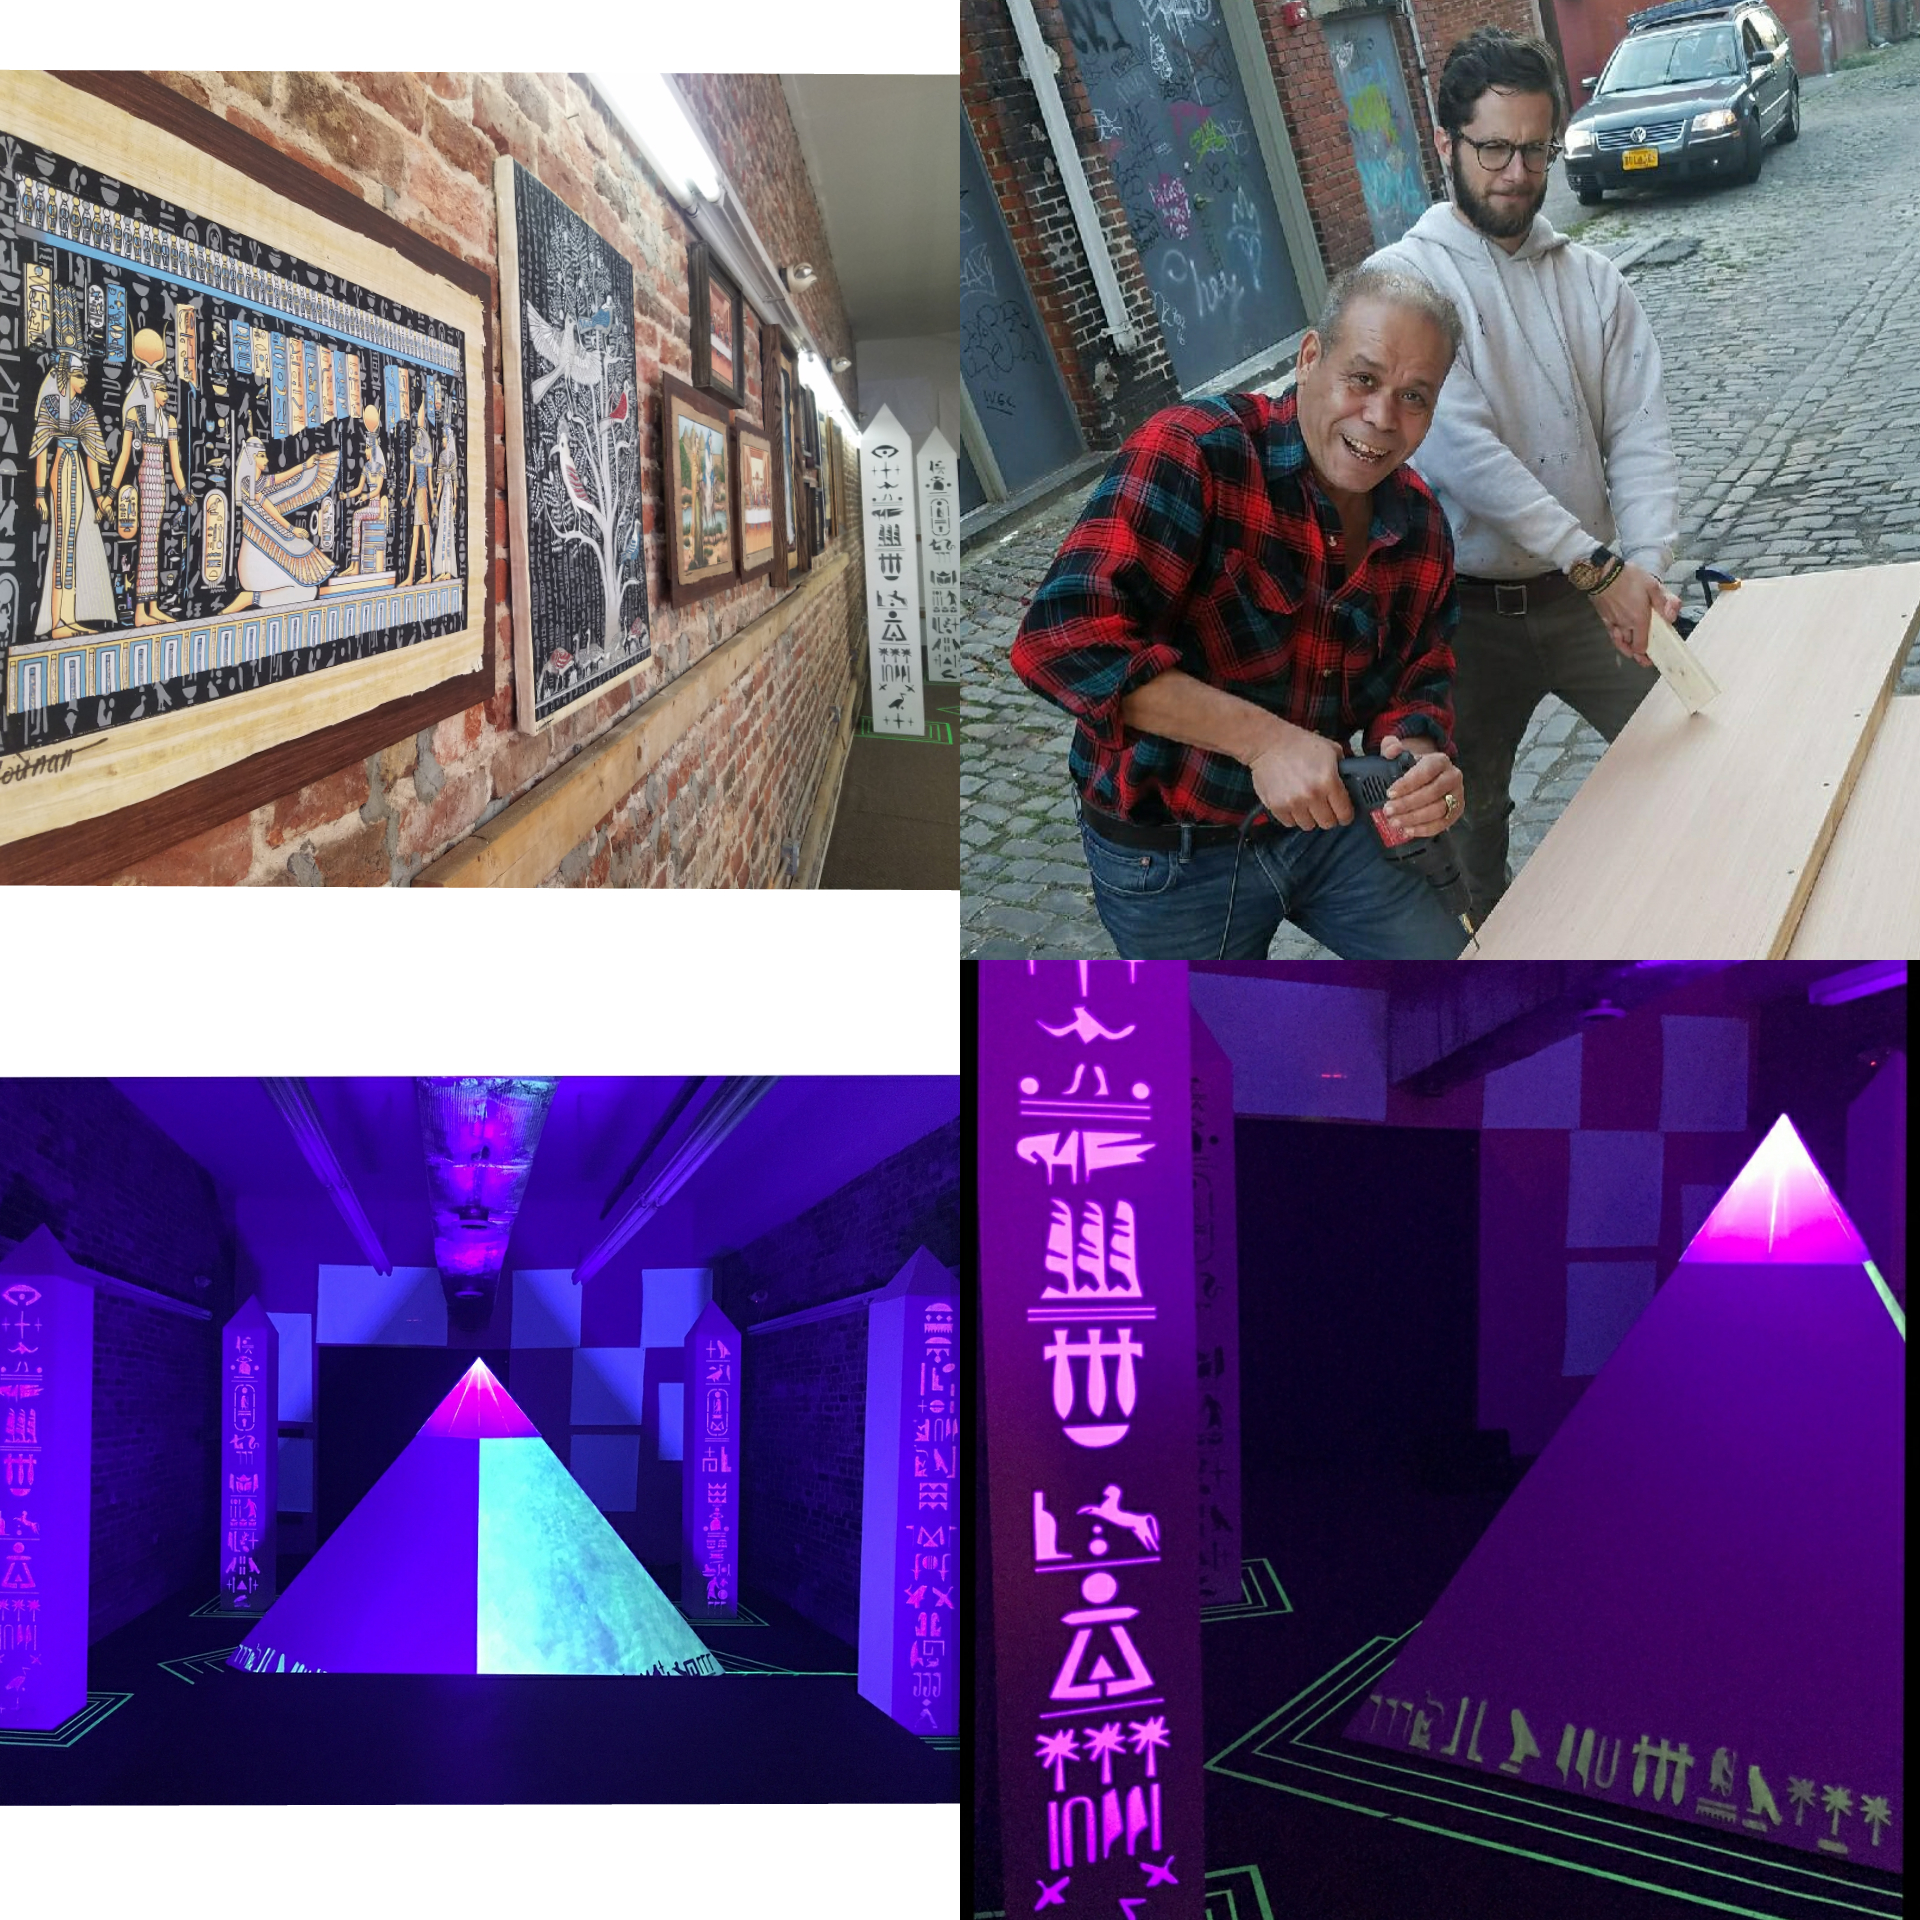 Inlight Festival Collage Photo.jpg